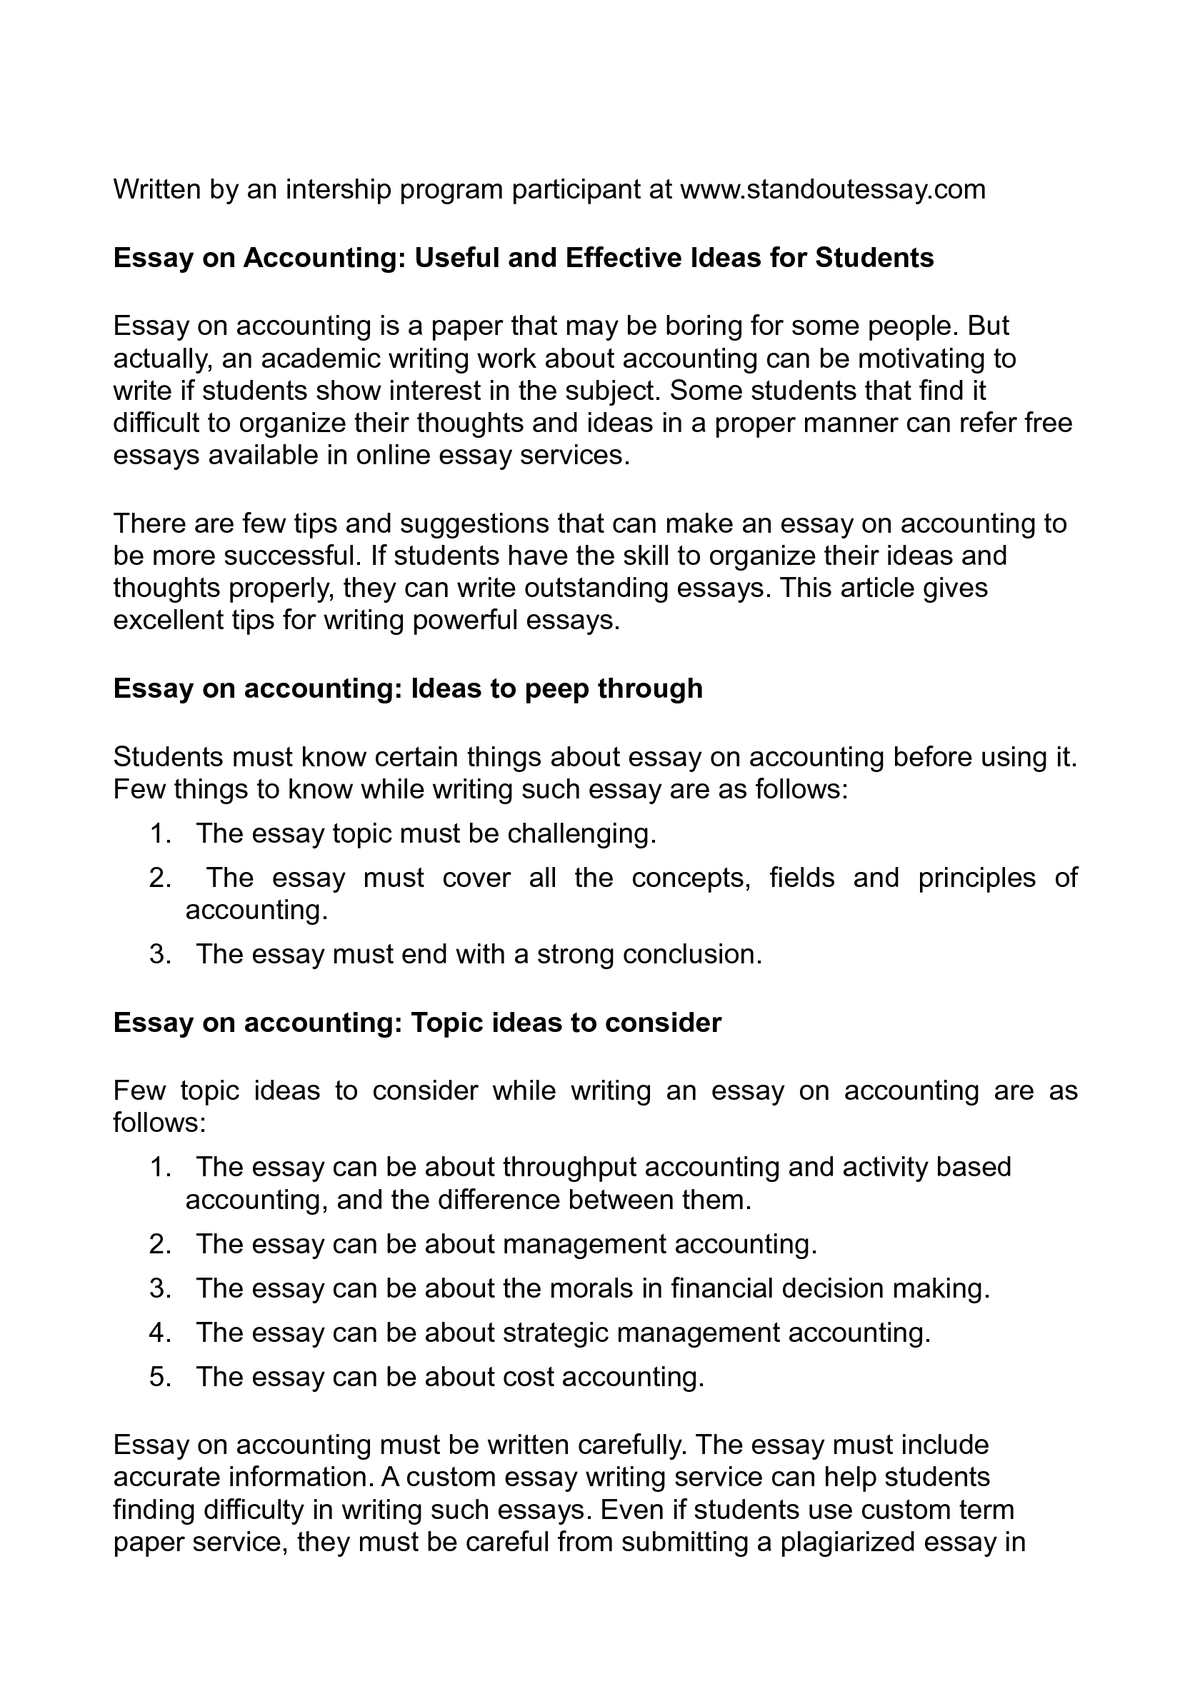 English Model Essays  High School Argumentative Essay Examples also Thesis Support Essay Calamo  Essay On Accounting Useful And Effective Ideas  Essay On Healthy Living